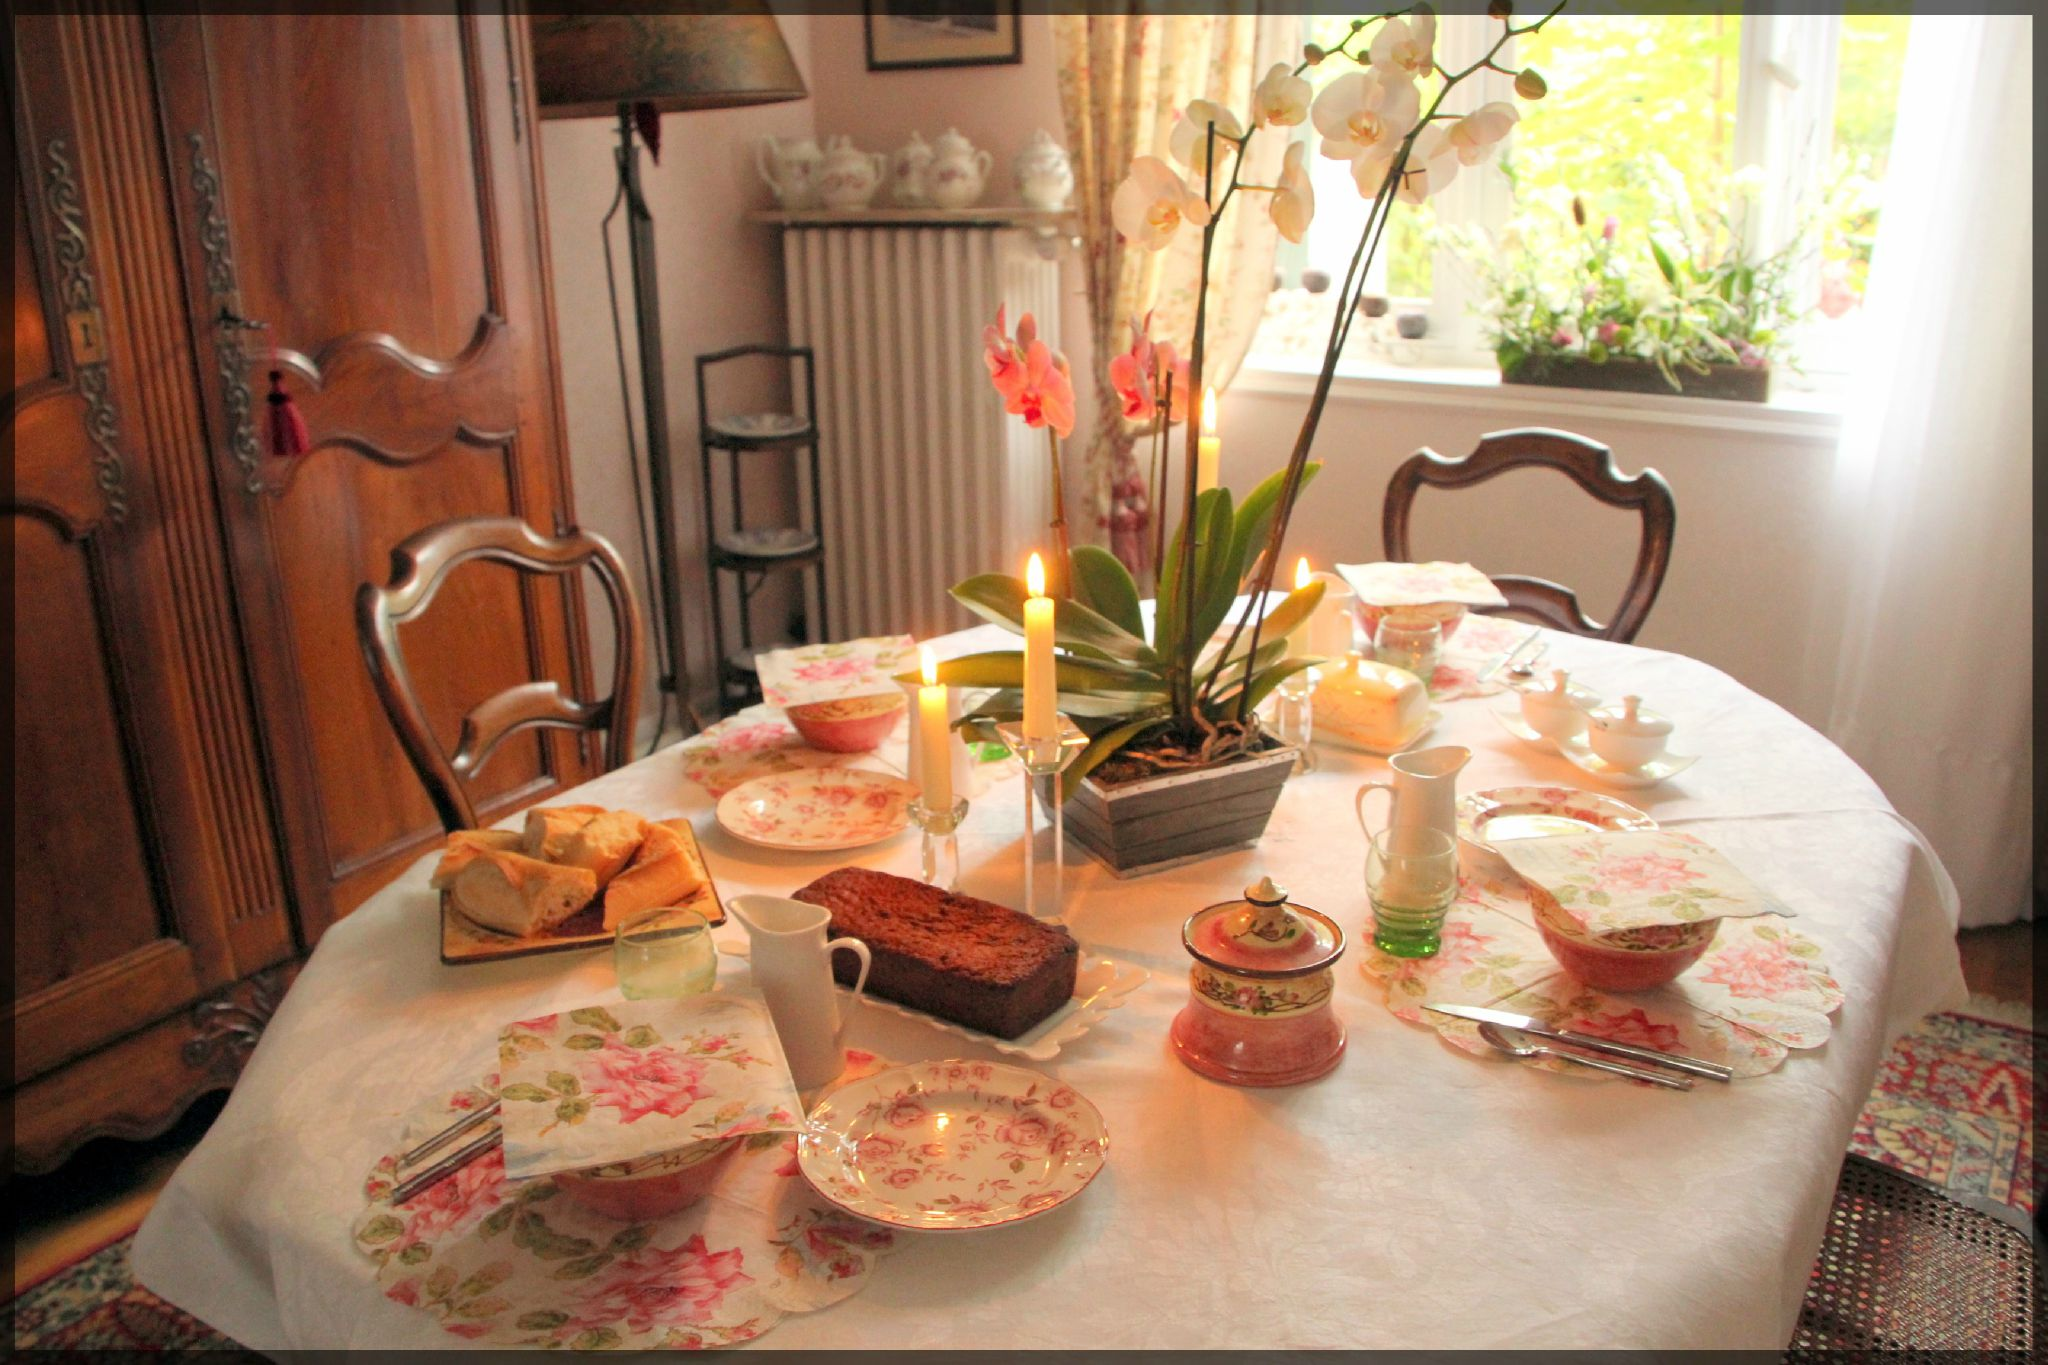 Petit d jeuner rose photo de mes jolies tables - Table petit dejeuner lit ...